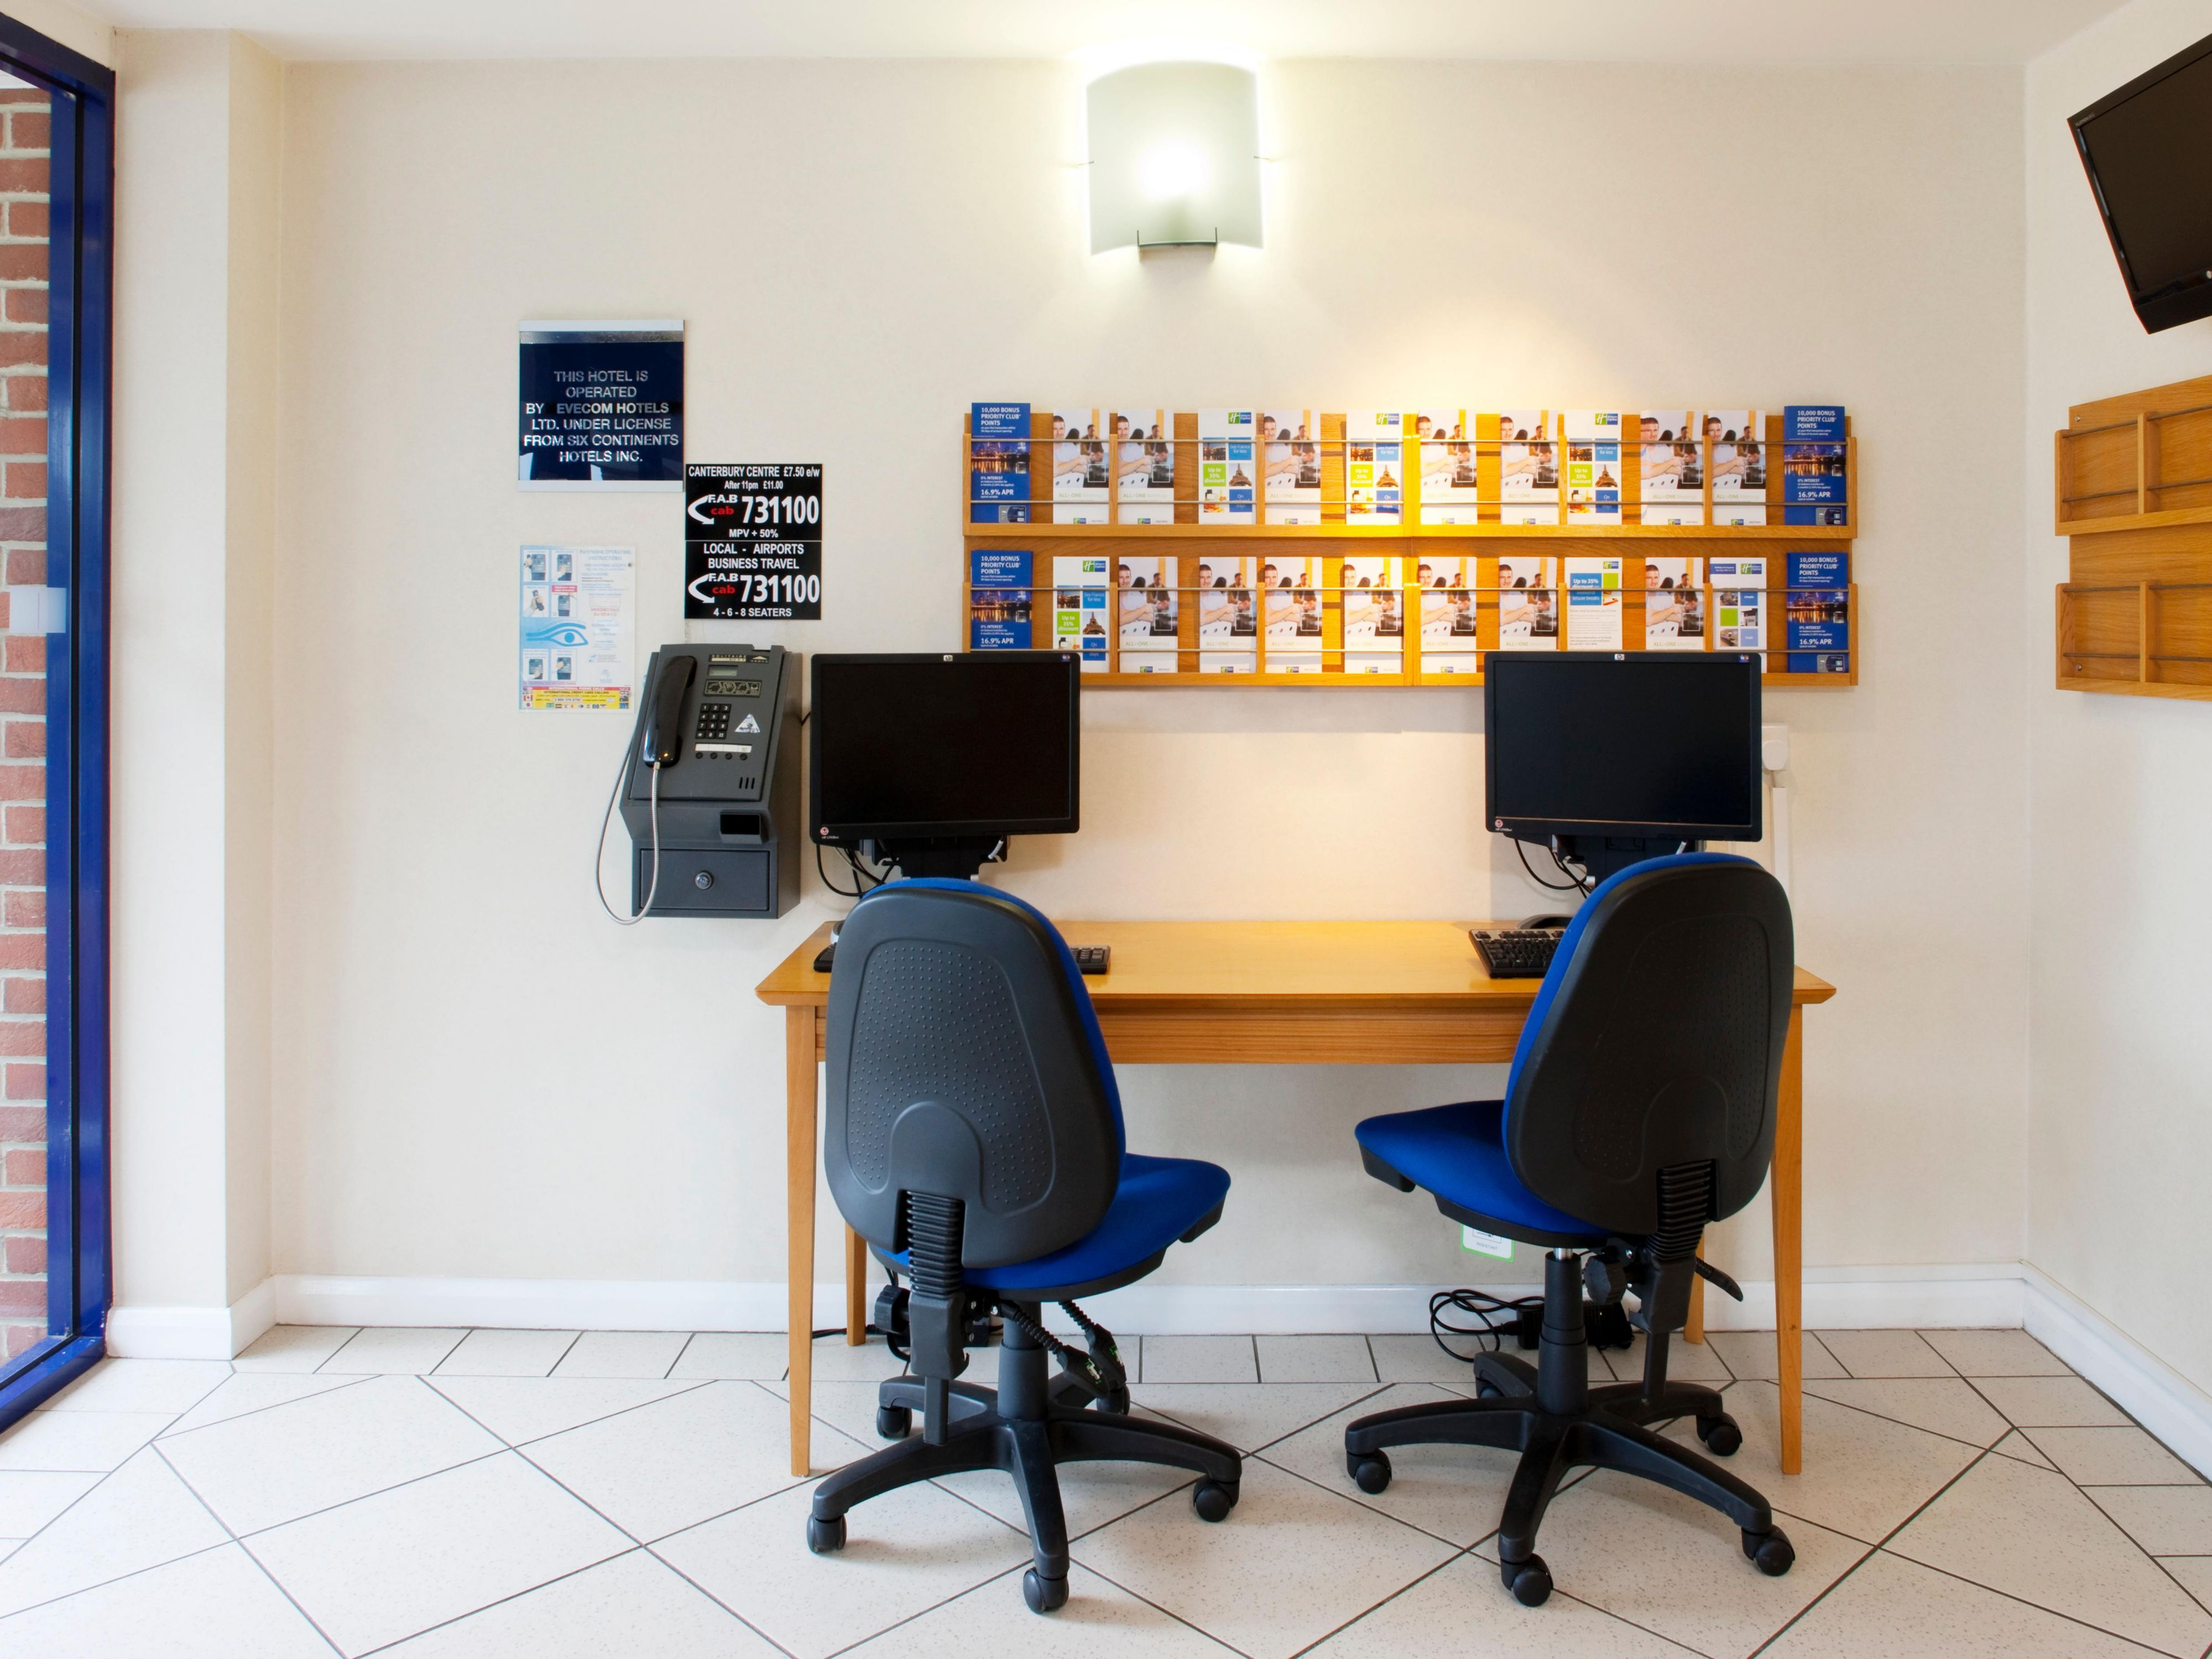 Small Business Centre providing free internet access